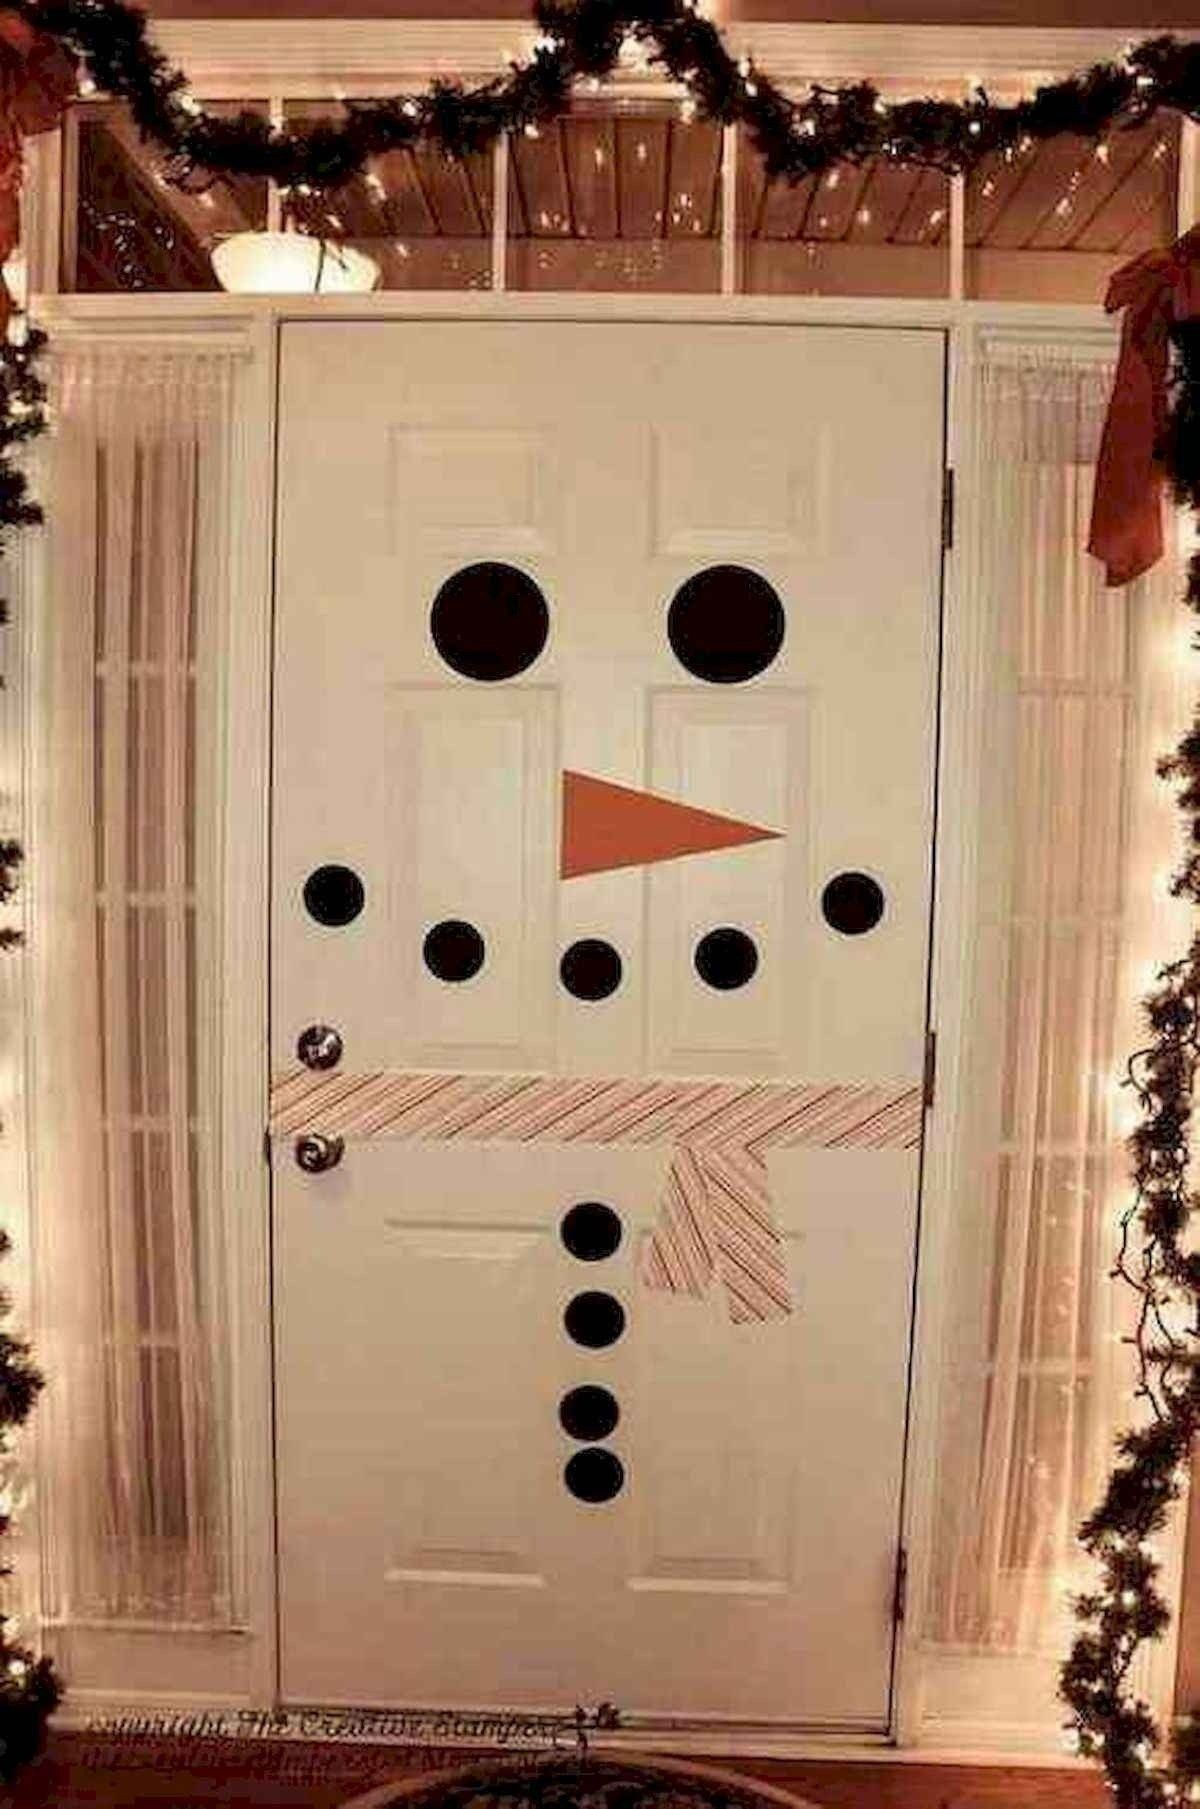 40 Simple DIY Christmas Door Decorations For Home And School #christmasdoordecorationsforschool 40 Simple DIY Christmas Door Decorations For Home And School christmas #40 #simple #diy #christmas #door #decorations #for #home #and #school #christmasdoordecorationsforschool